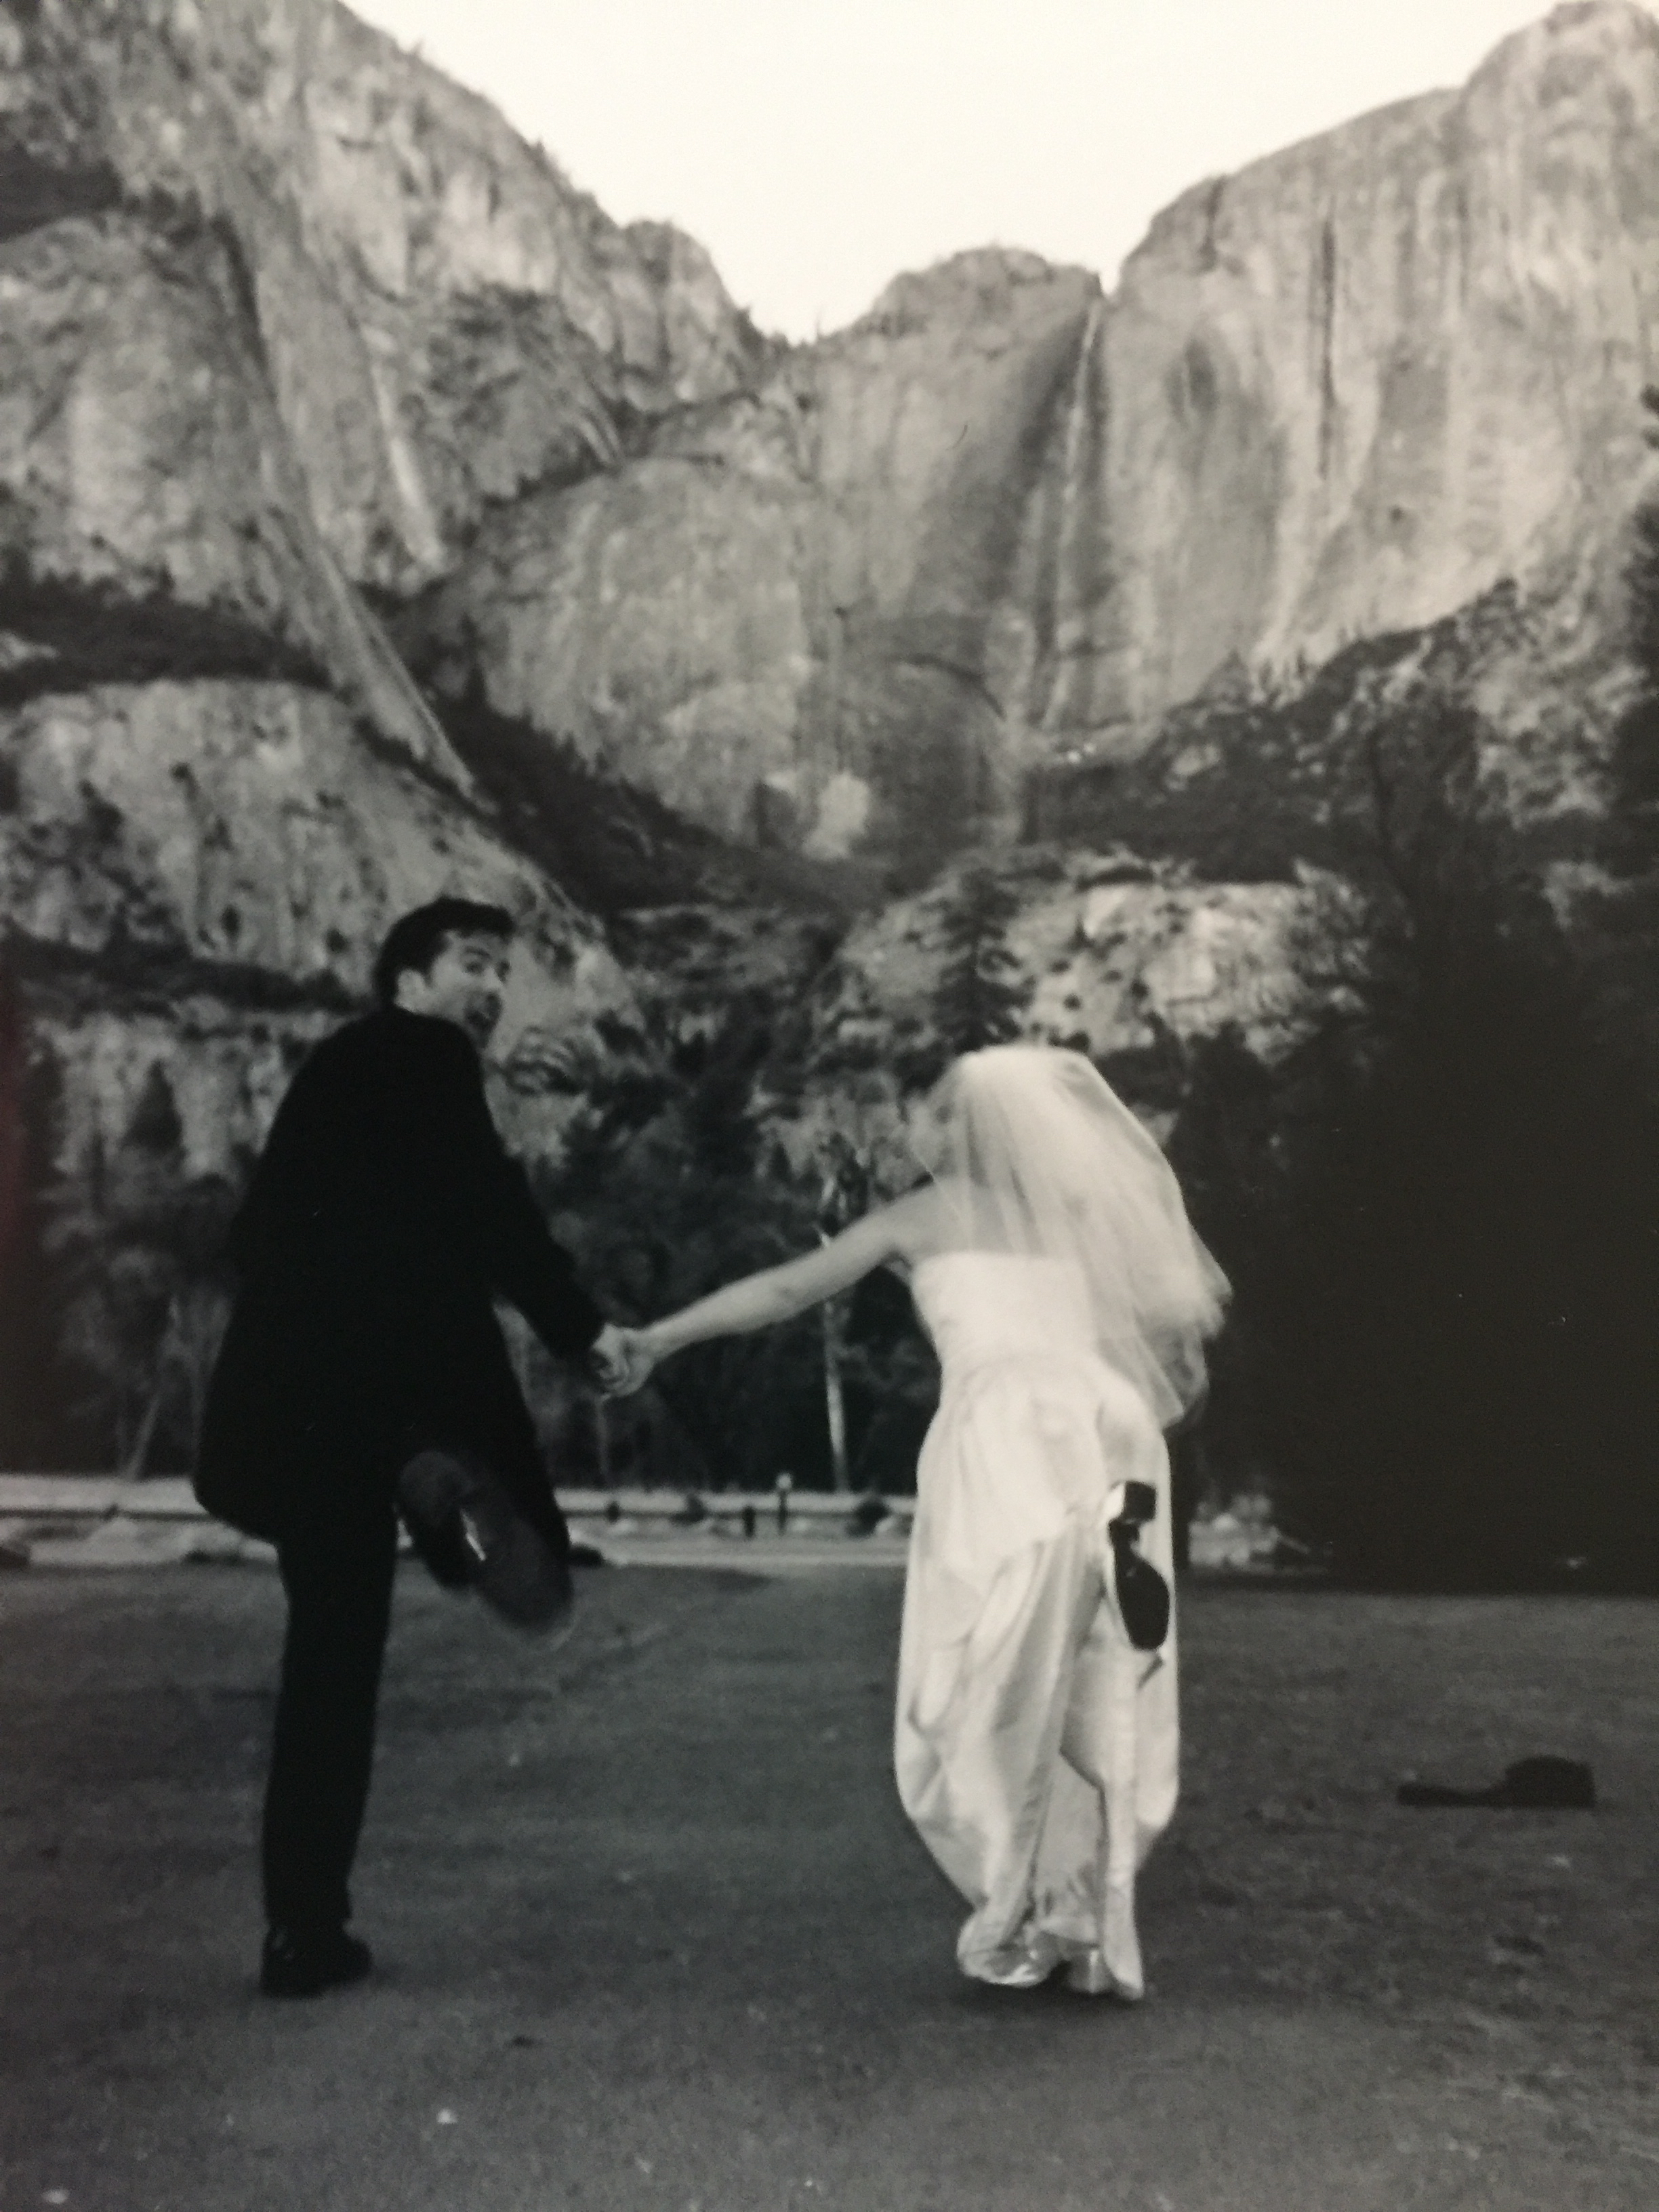 yosemite wedding escape.jpg